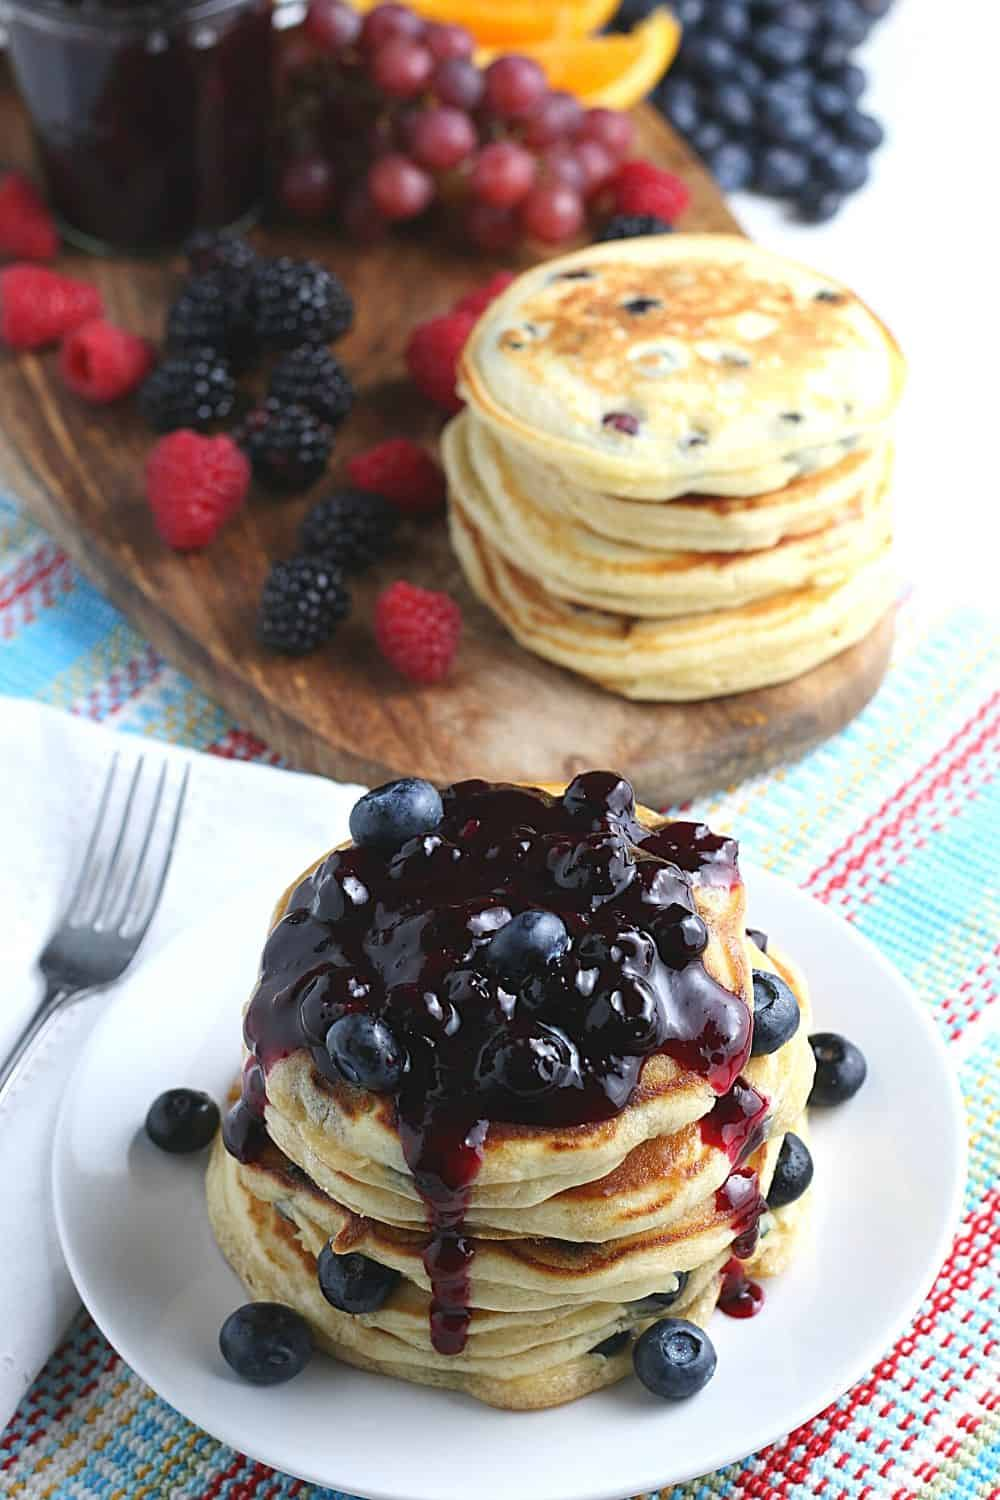 Start your morning off with a delicious batch of Blueberry Buttermilk Pancakes from scratch. This light and fluffy blueberry pancake recipe is perfect for blueberry season or all year round.